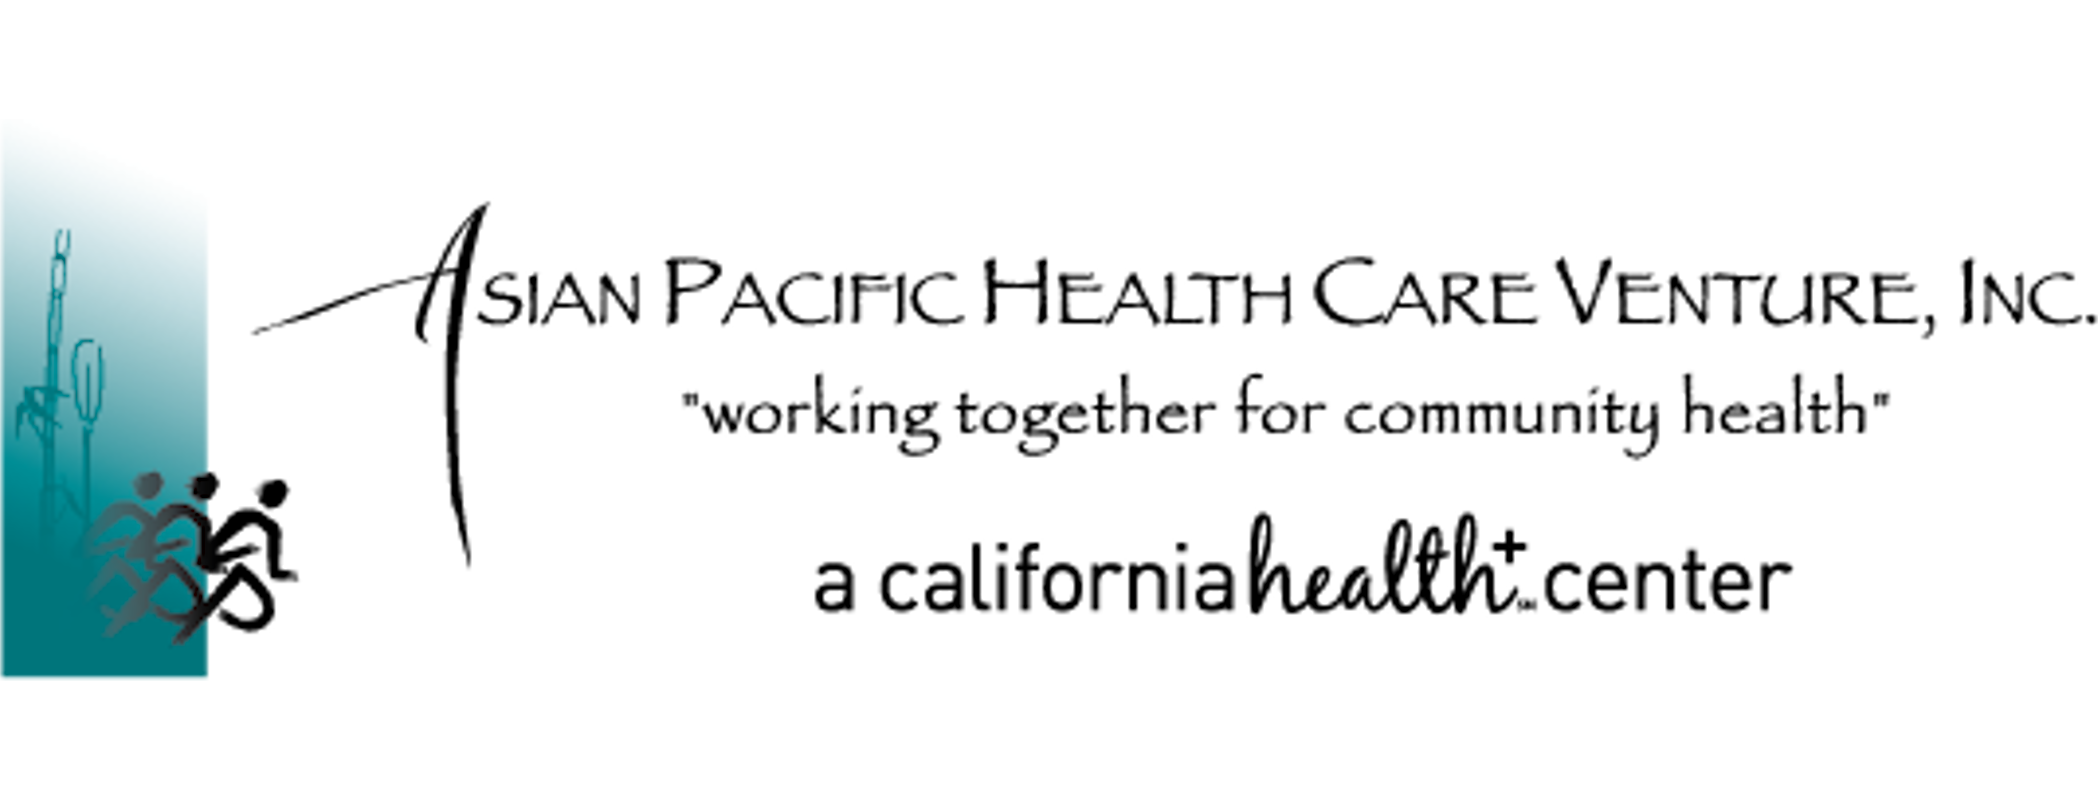 - Asian Pacific Health Care Venture4216 Fountain Ave., Los Angeles 90029(323) 644-3880 | aphcv.org